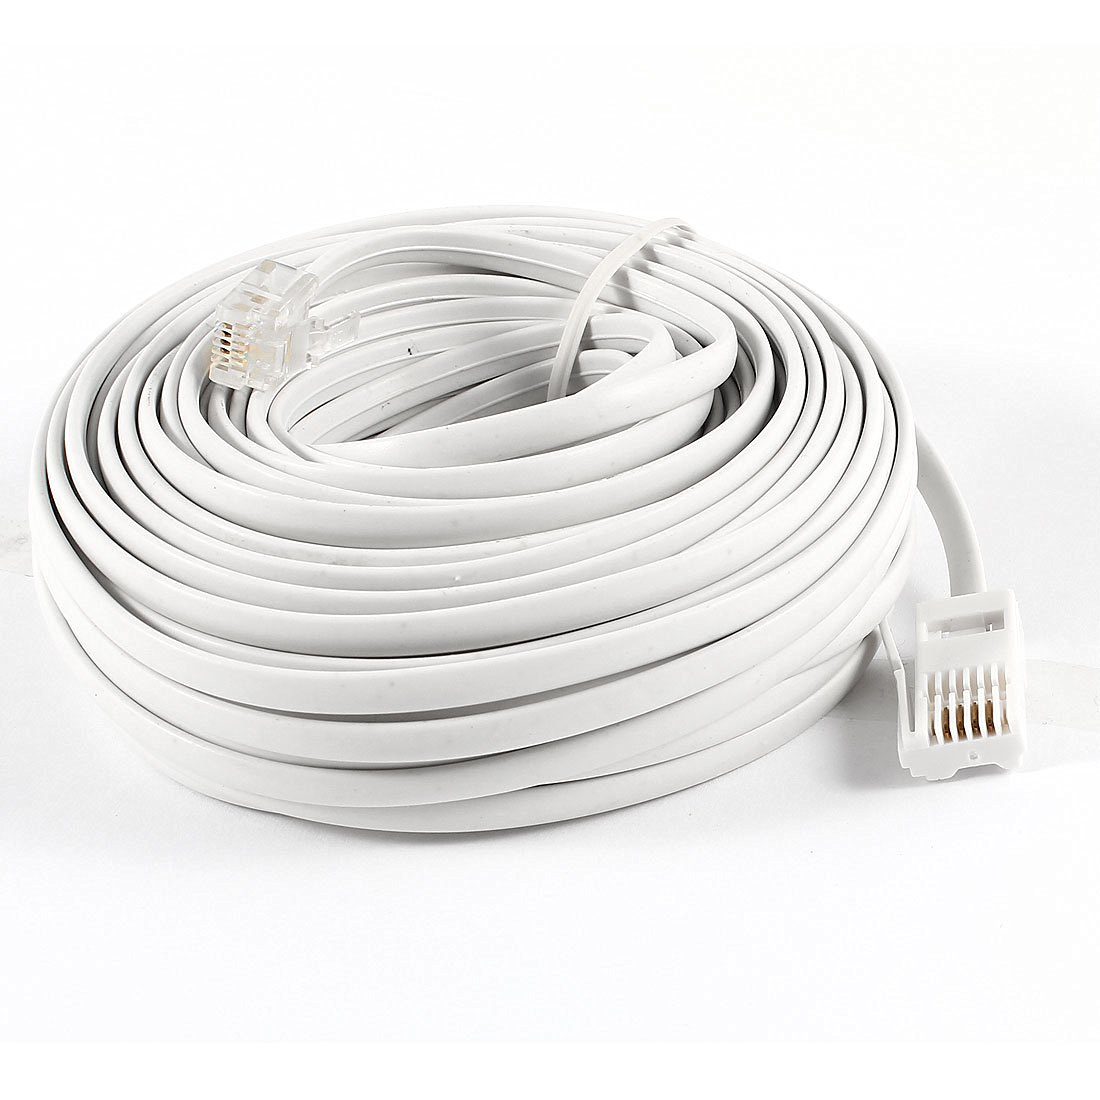 Cheap Standard Telephone And Cables Find Bt Phone Cable Wiring Get Quotations 15m 49ft Rj11 To Uk 6p4c M Modular White